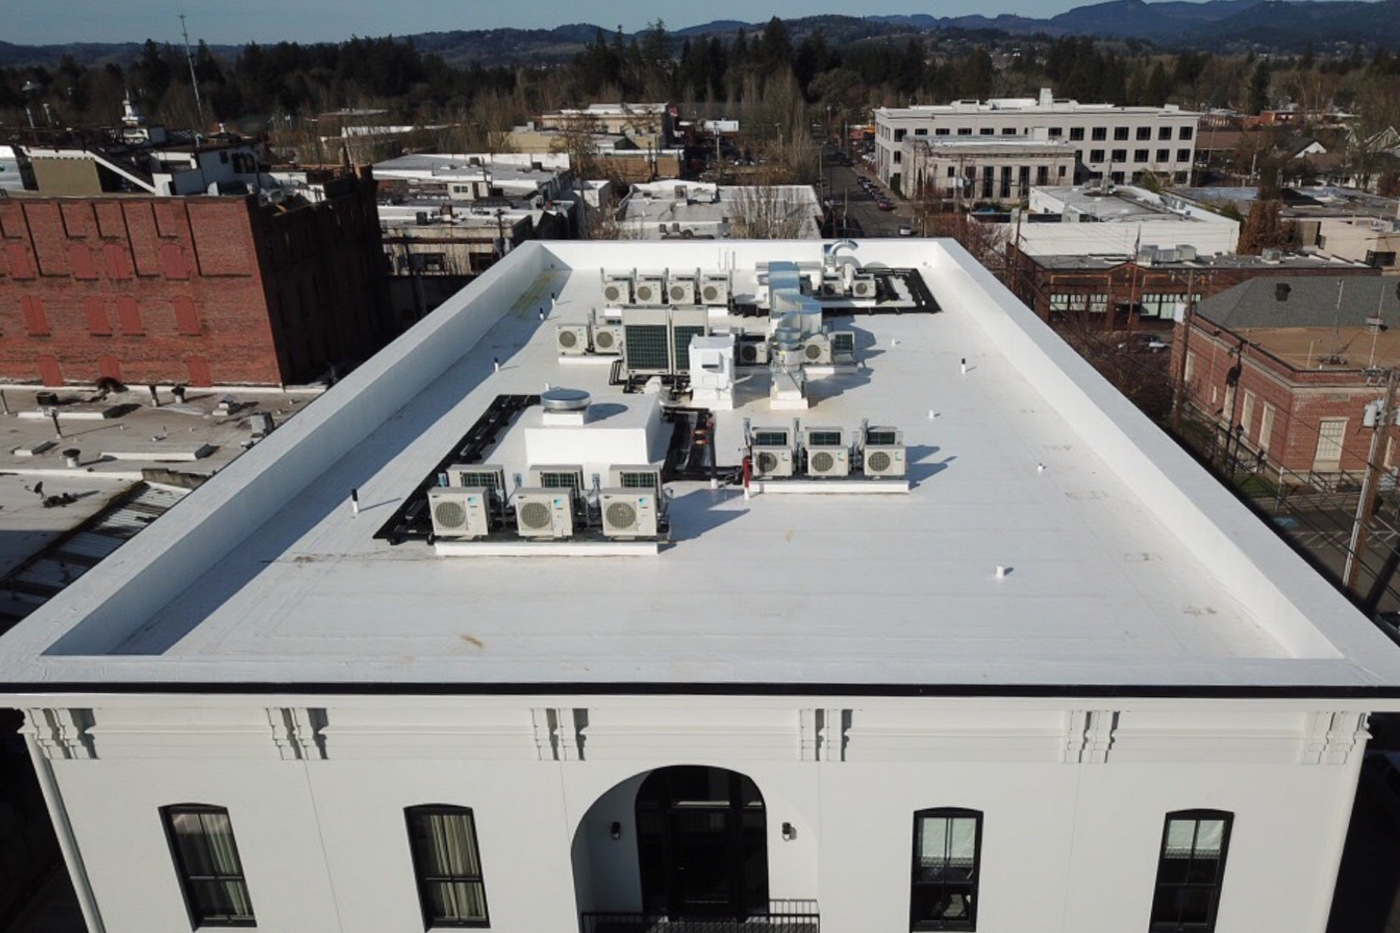 Atticus Hotel Exterior Roof Flyby HVAC System